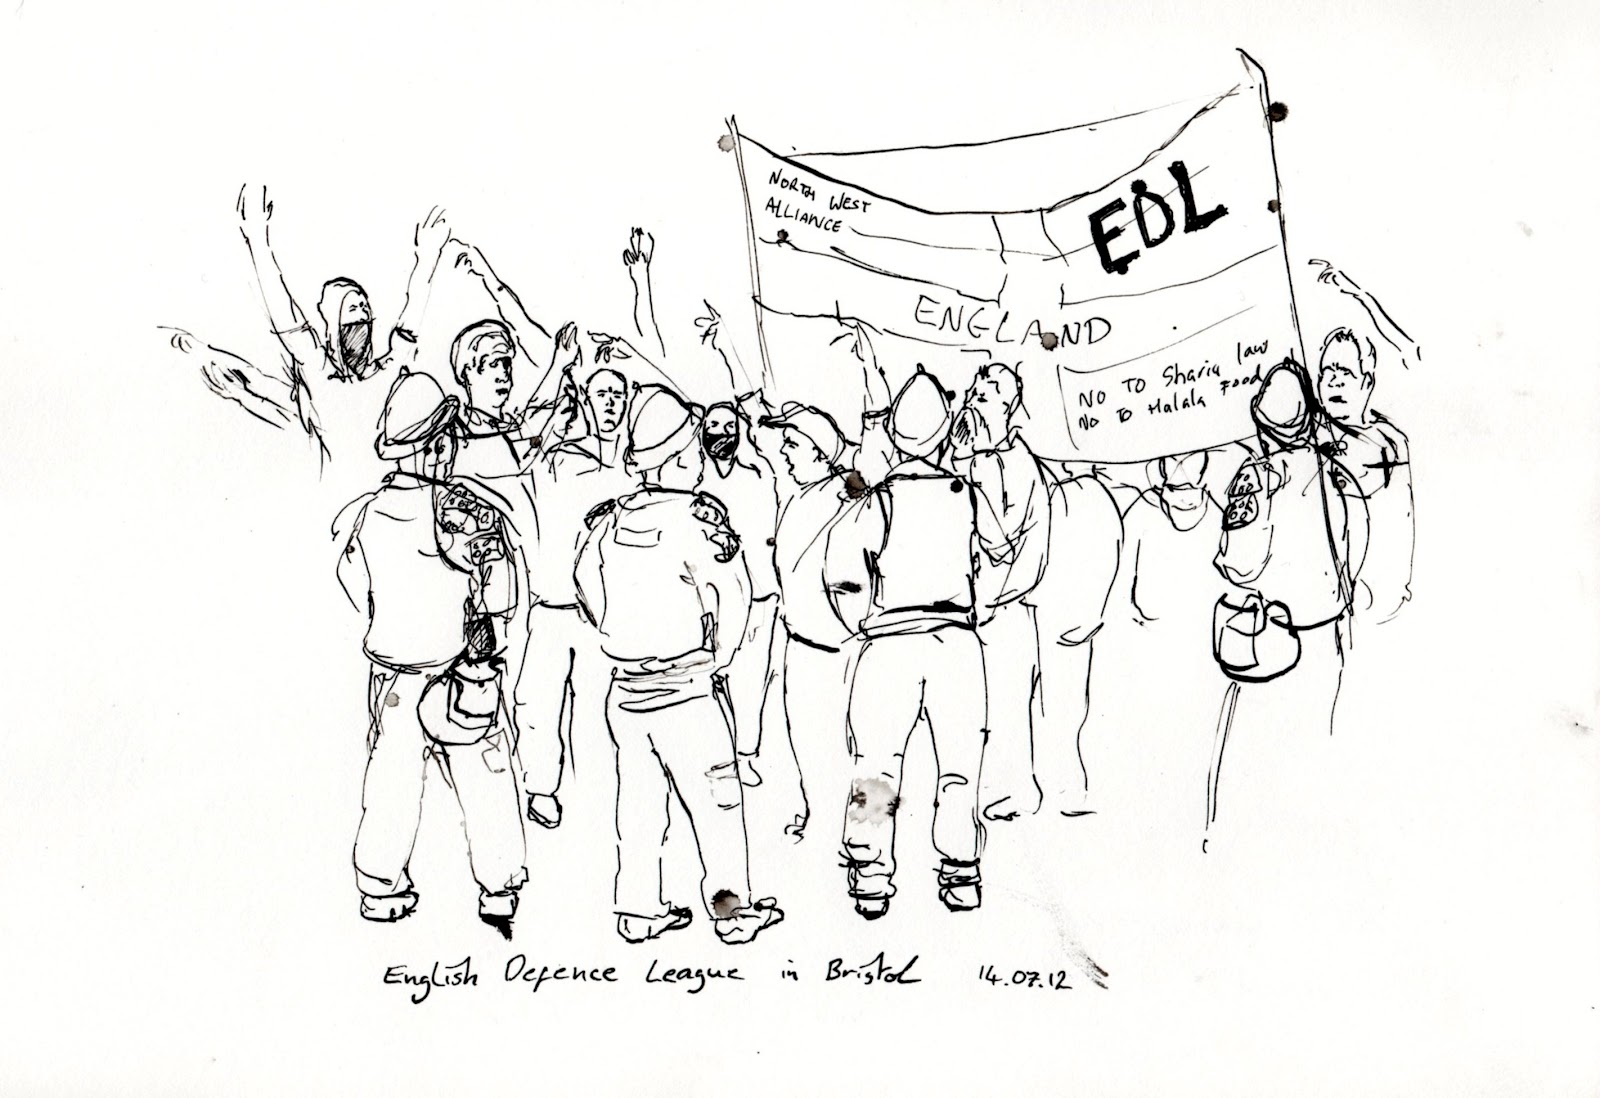 Tim S Political And Social Drawings E D L Rally And A